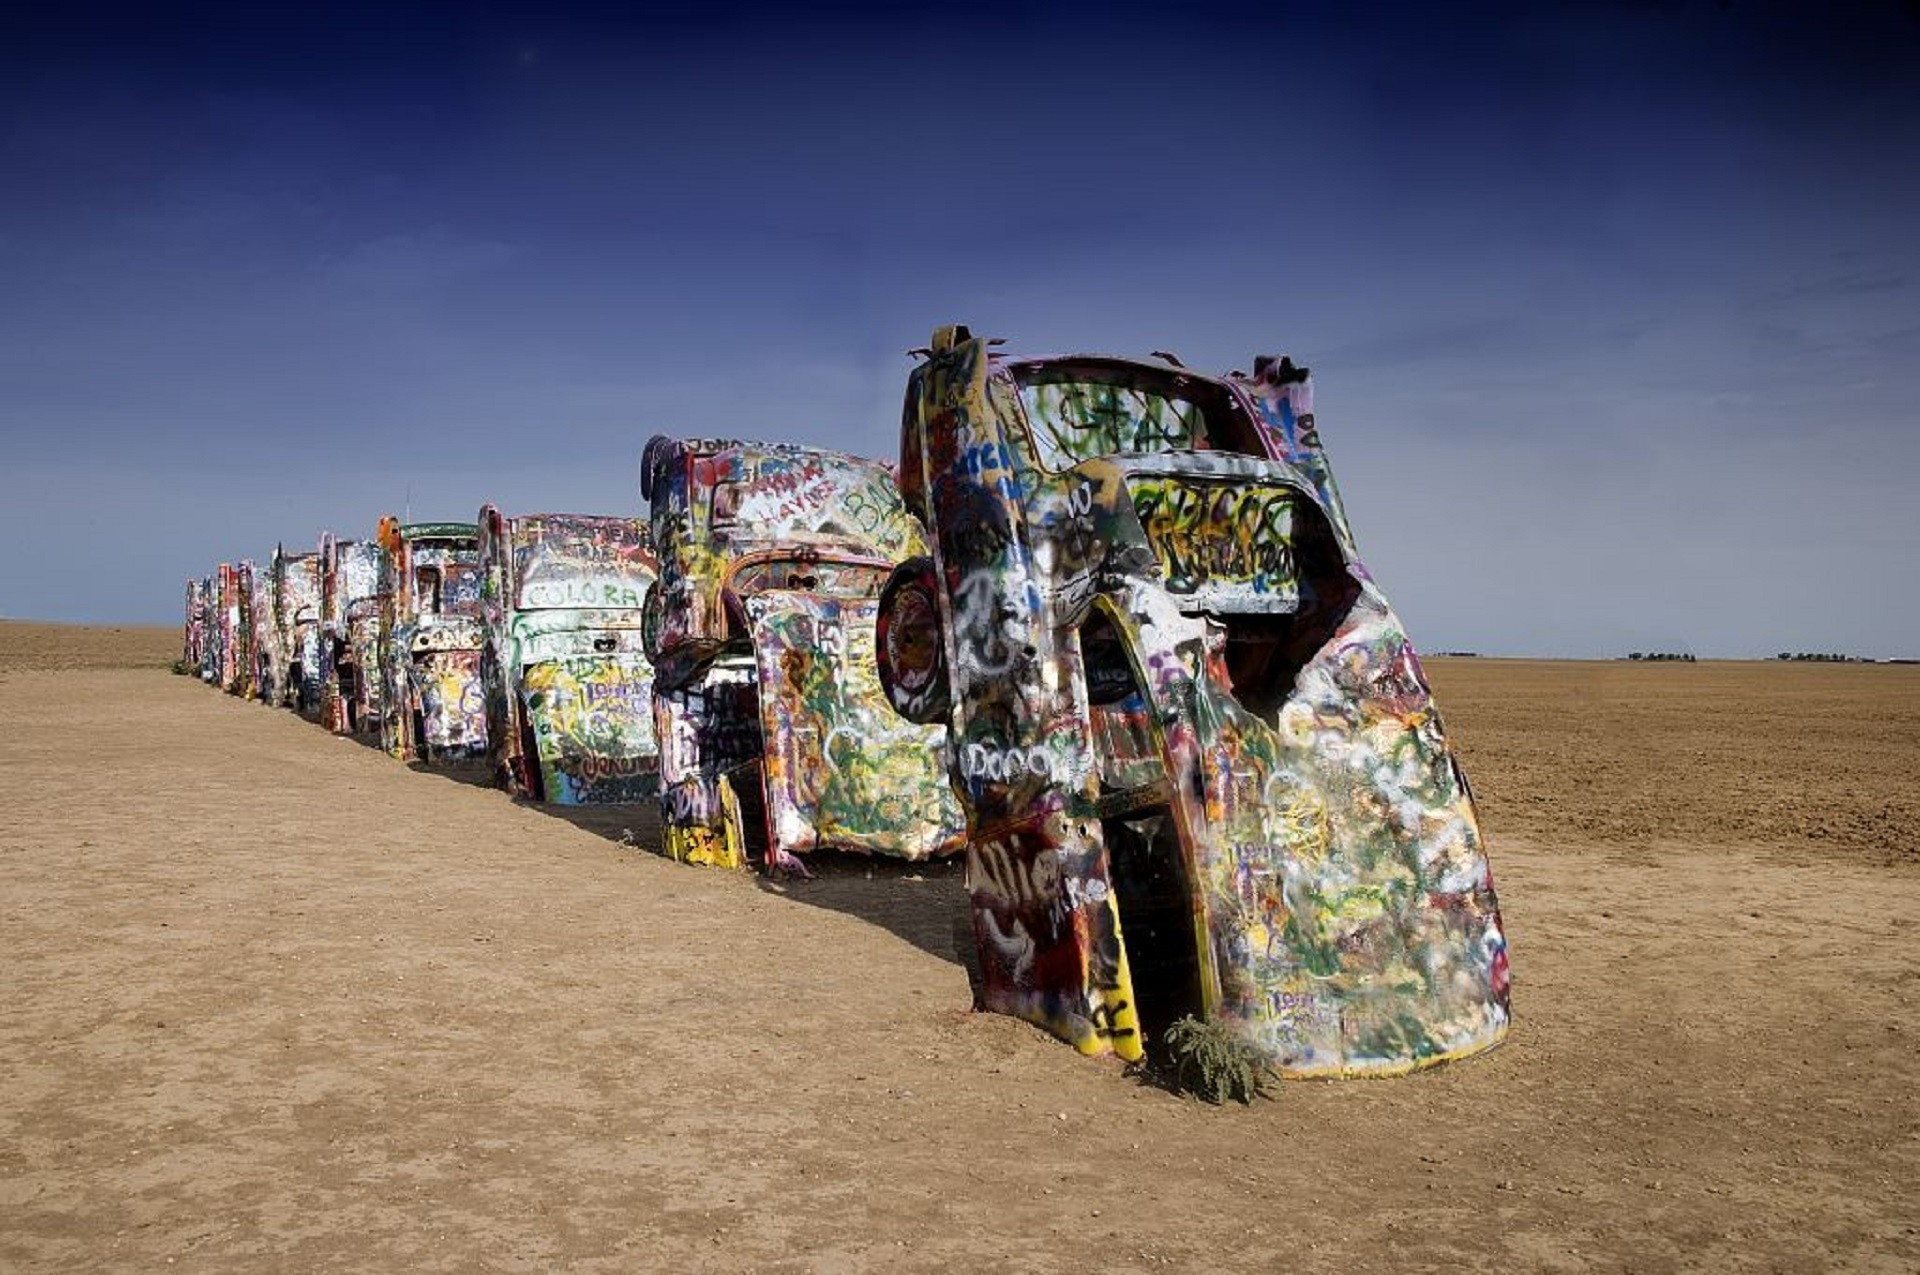 cadillac-ranch-754878